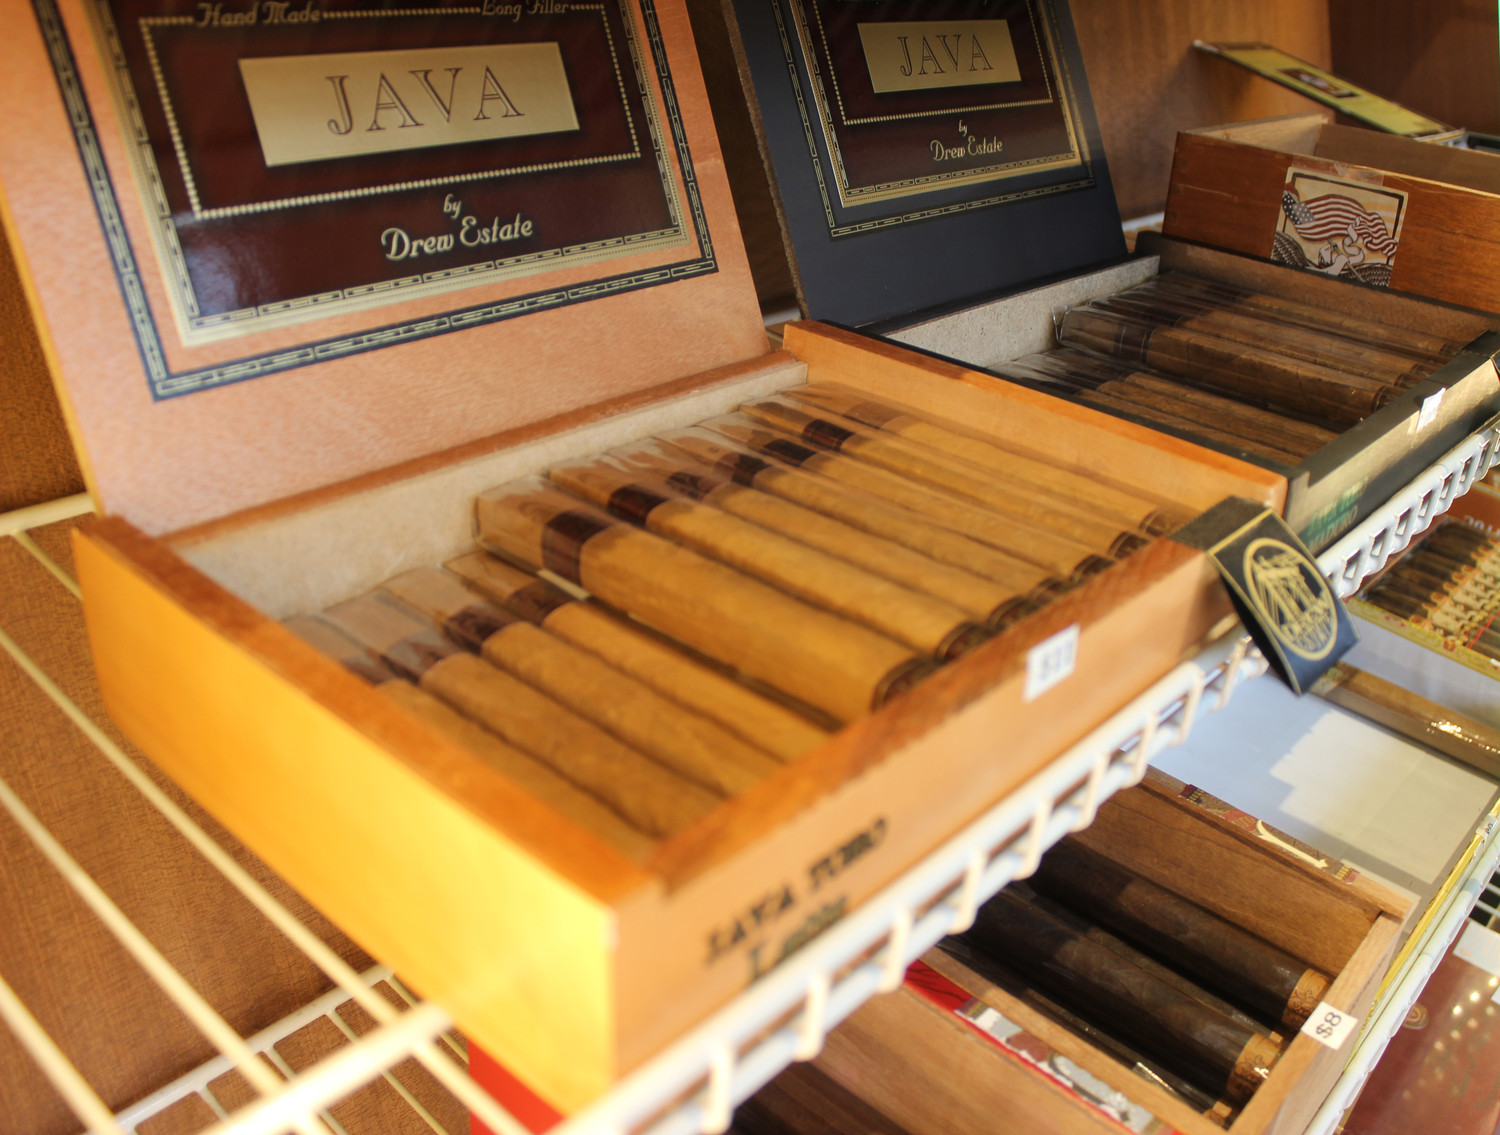 Customers can choose form a selection of brand-name and hand-rolled cigars.